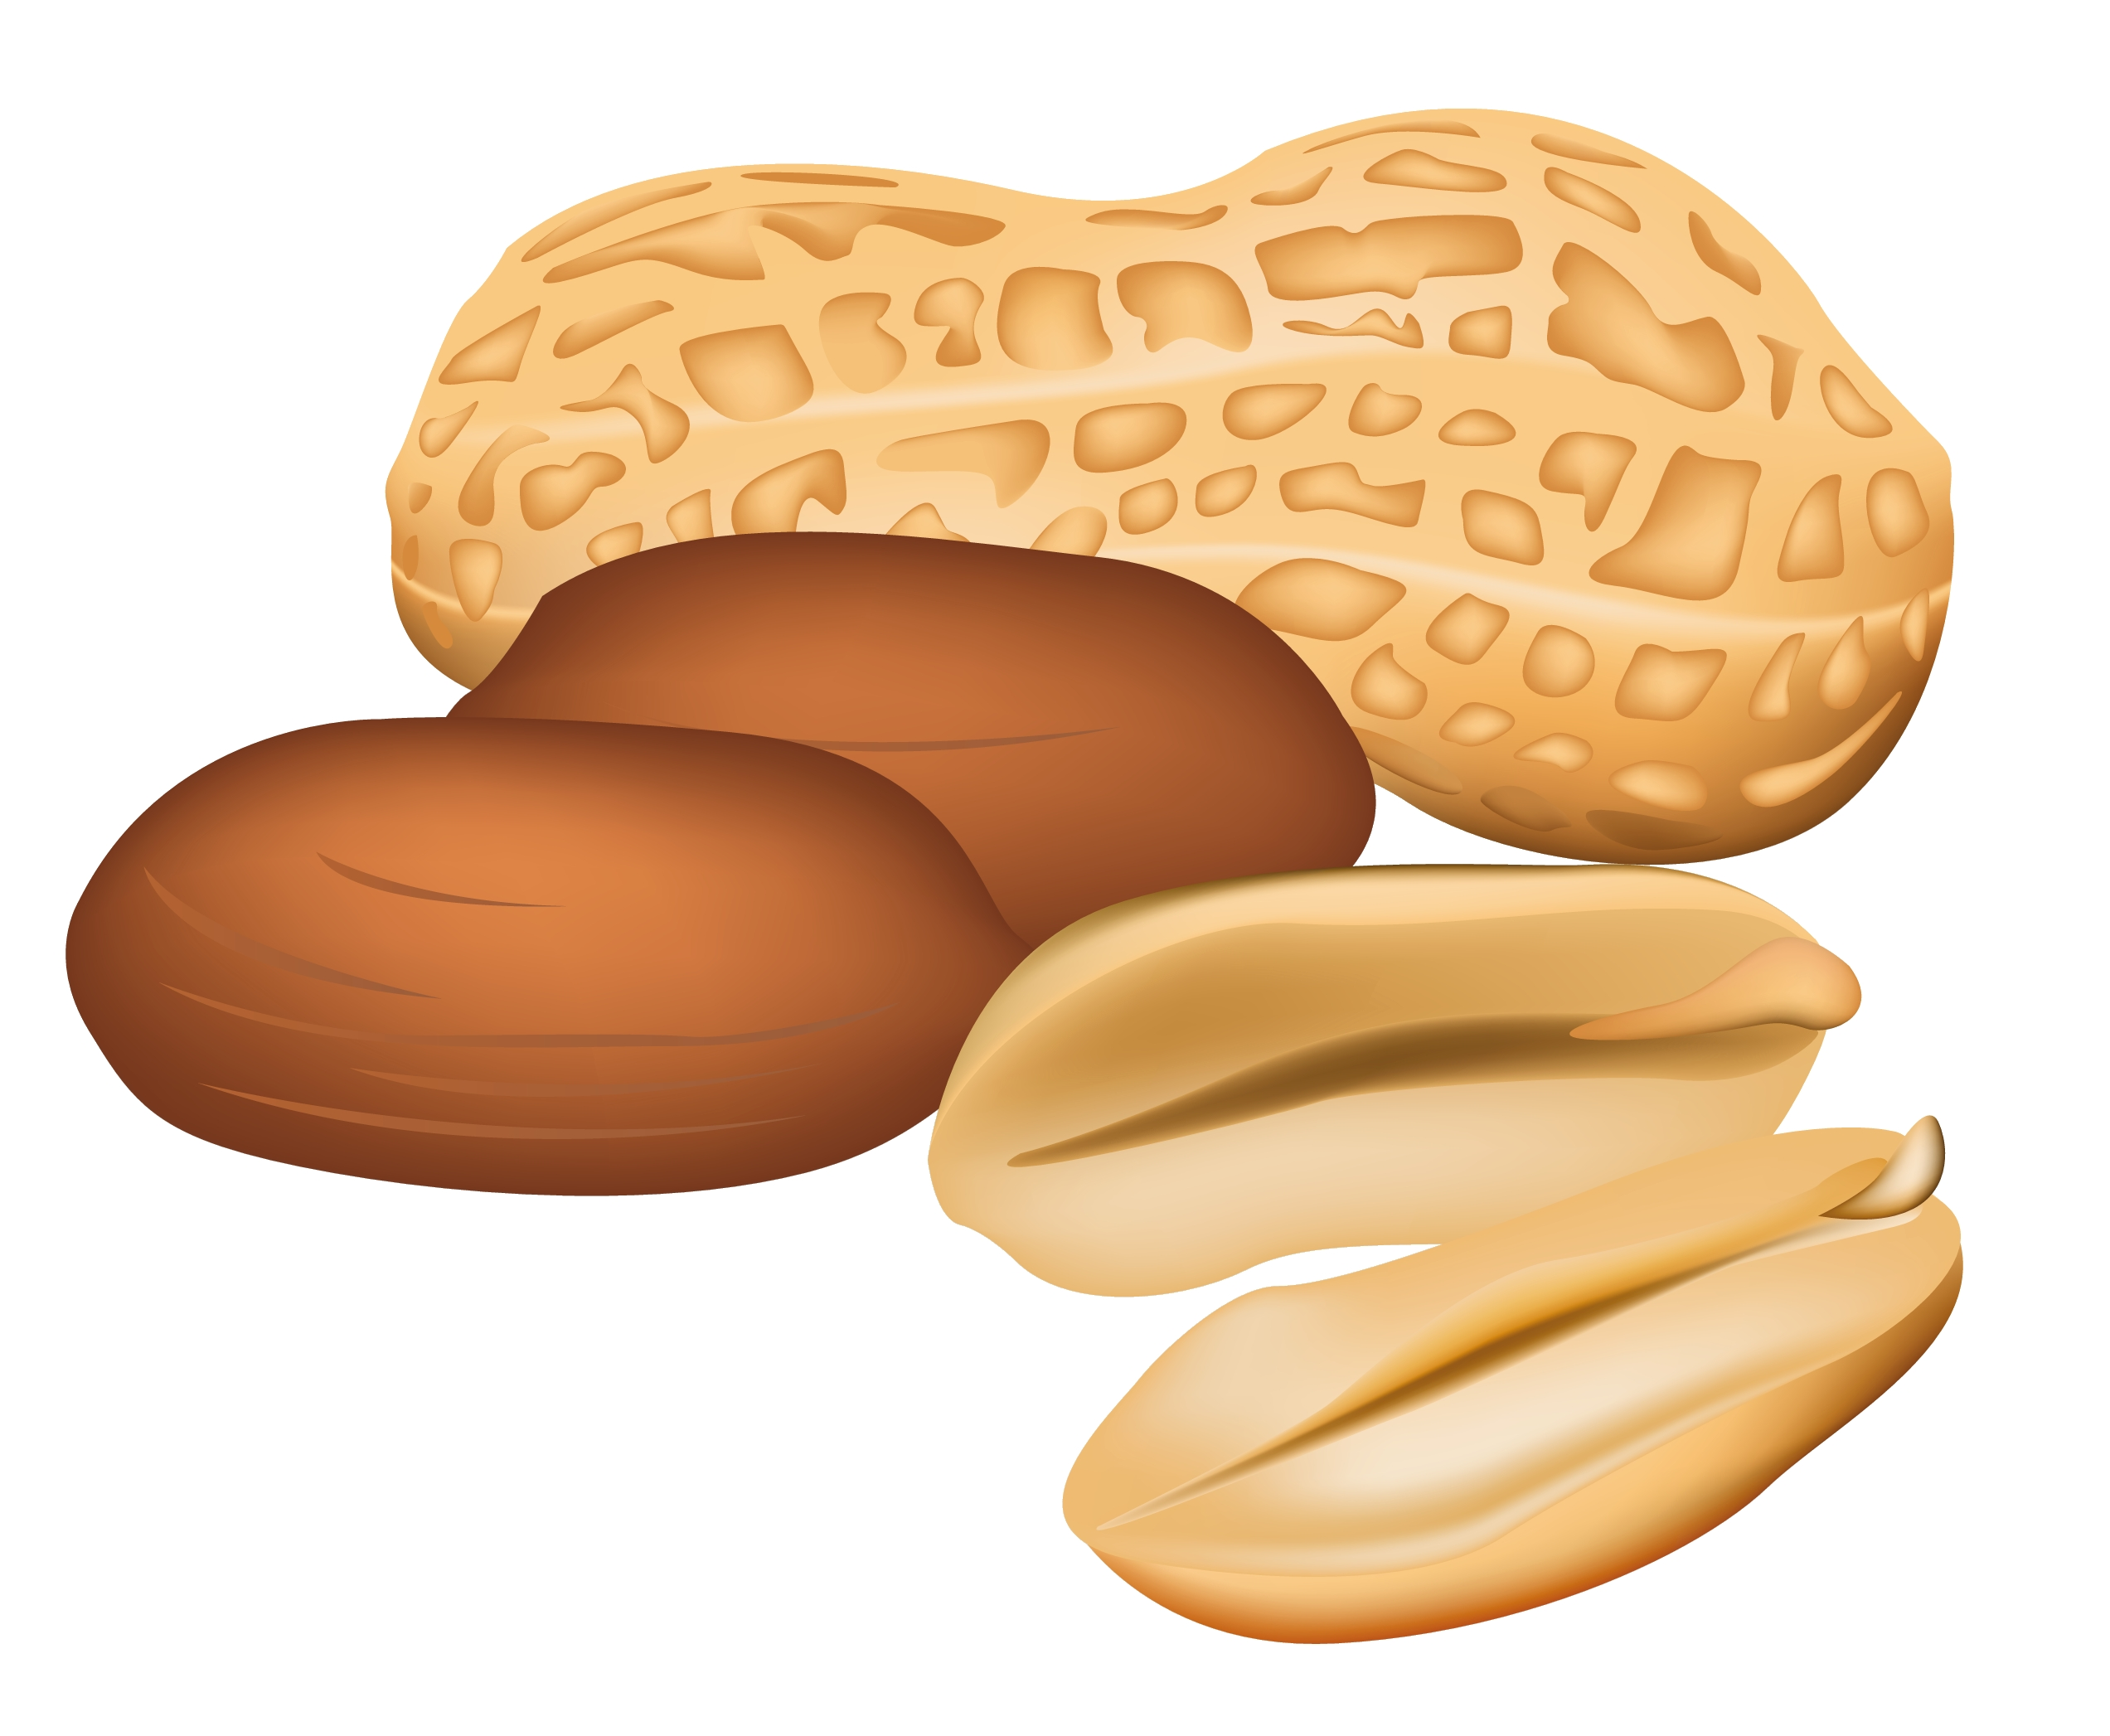 Peanut clipart. Awesome collection digital g